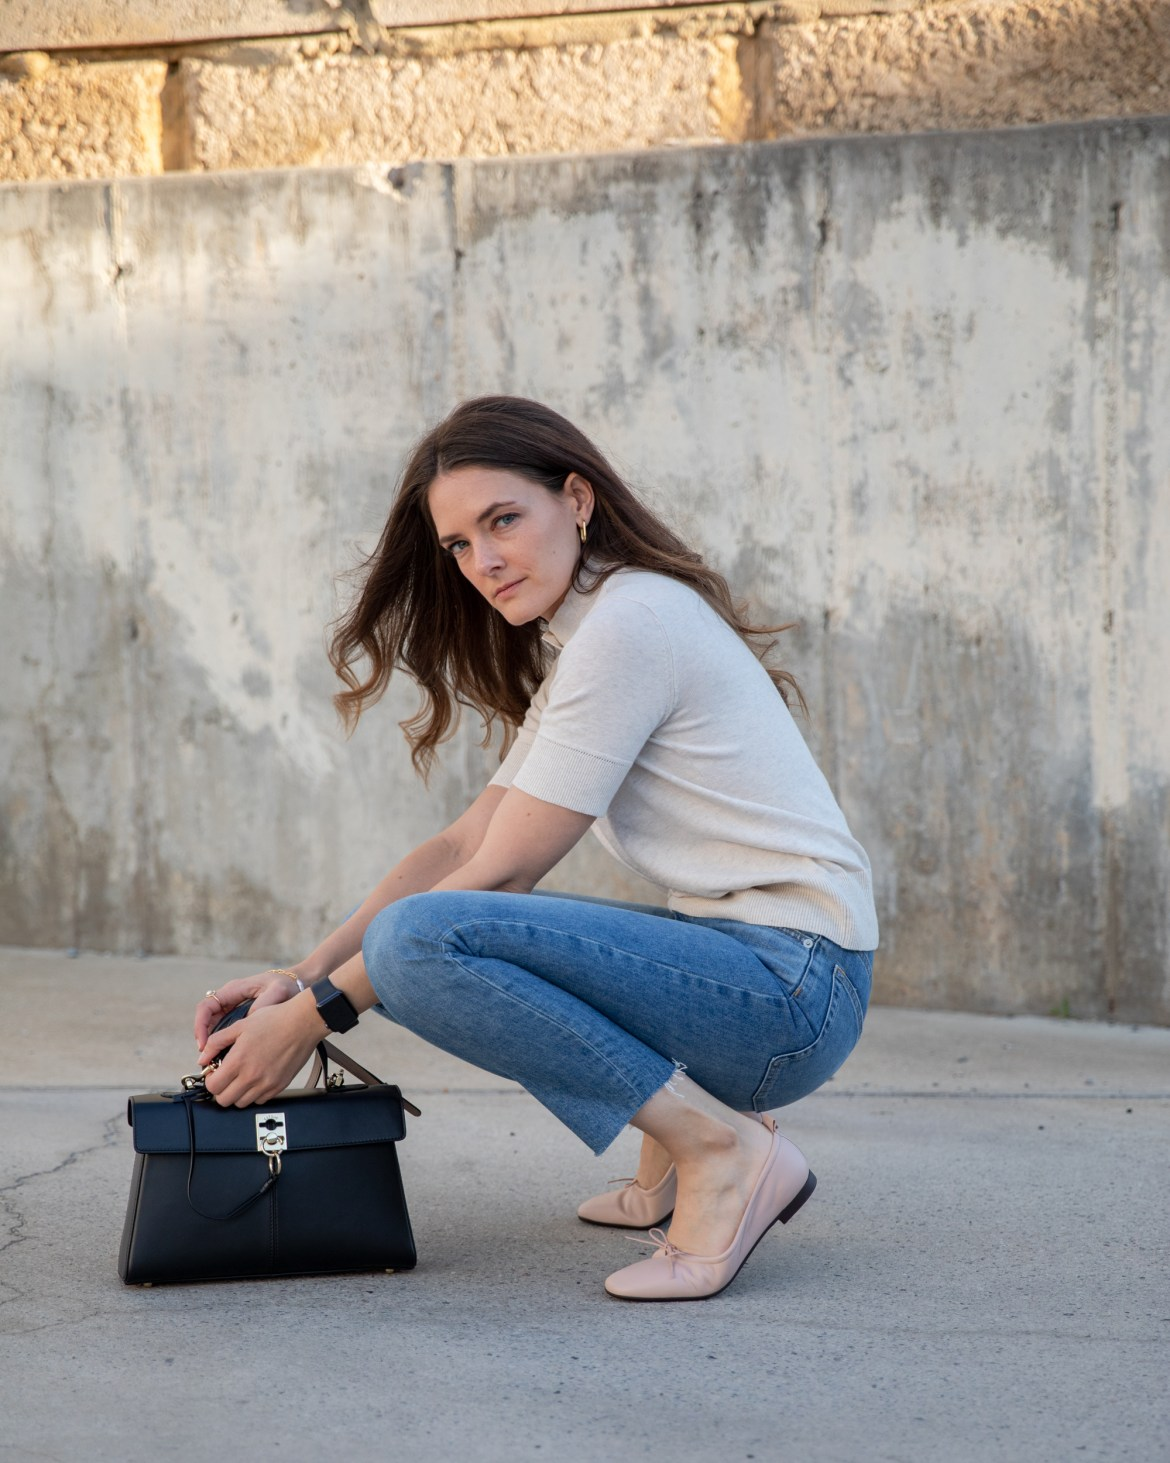 Ballet flats with jeans outfit idea with a knit top